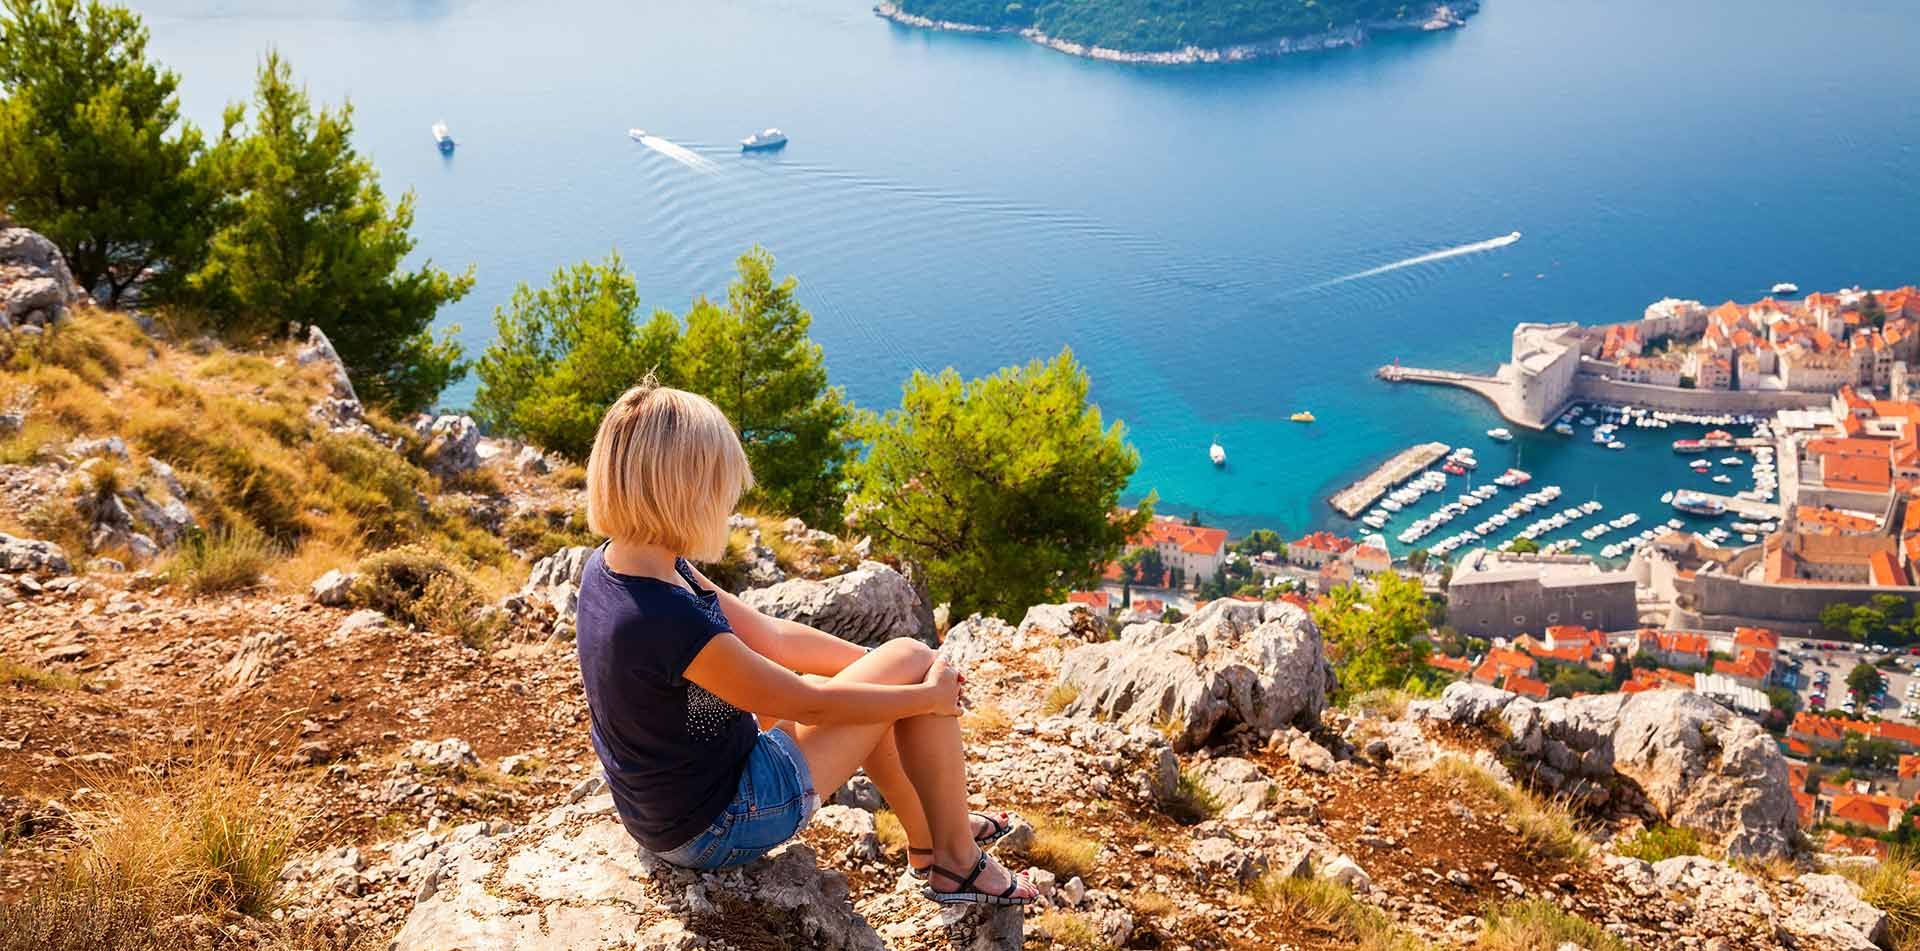 Europe Croatia Dalmatian Coast Dubrovnik young woman looking rocky terrain scenic harbor - luxury vacation destinations